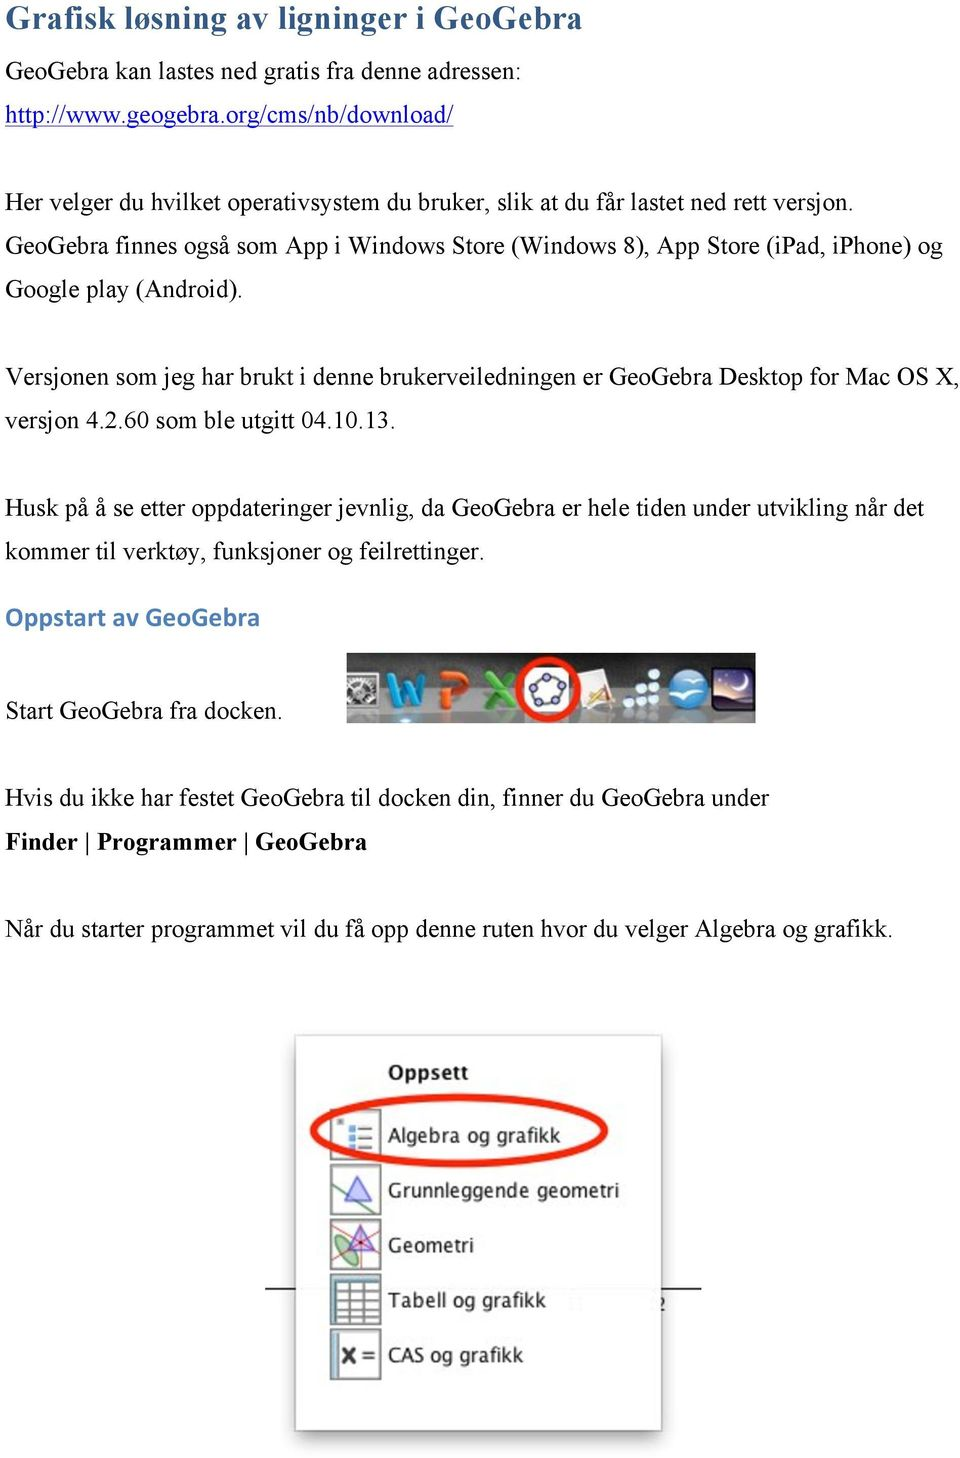 GeoGebra finnes også som App i Windows Store (Windows 8), App Store (ipad, iphone) og Google play (Android).